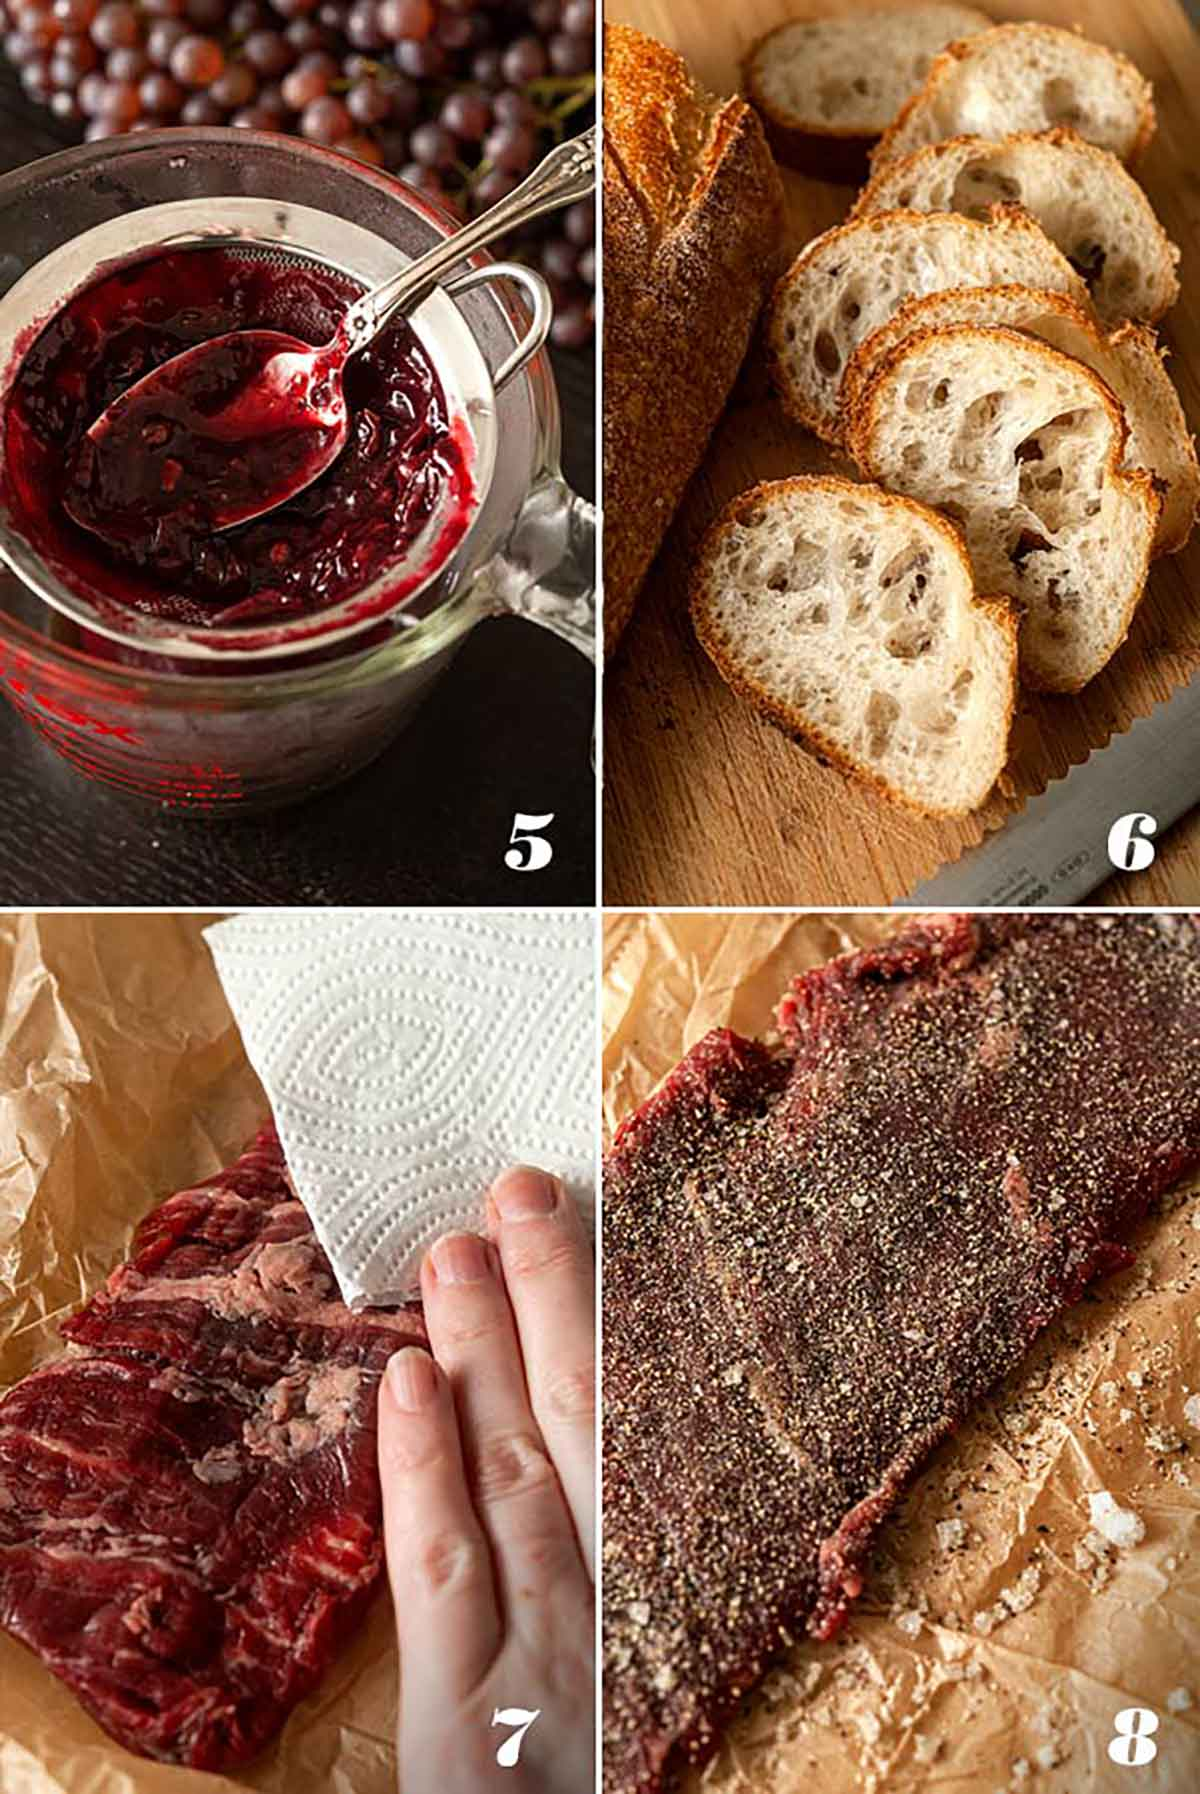 A collage of 4 images showing how to prepare ingredients for steak appetizers.